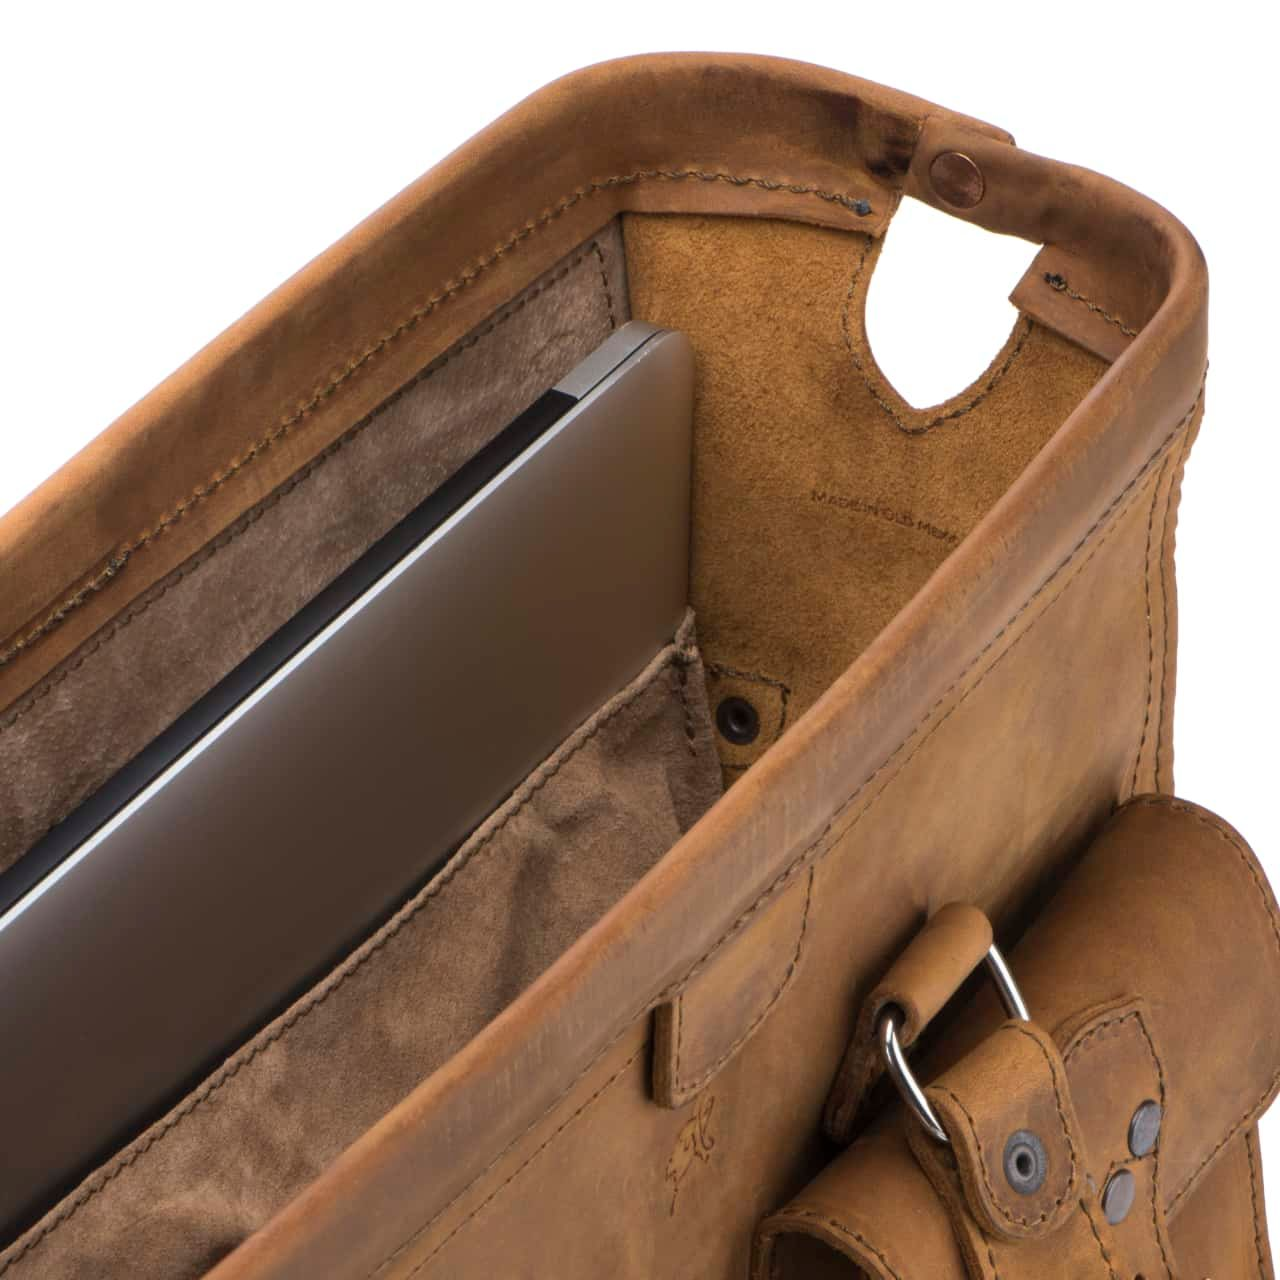 Leather Flight Bag in color Tobacco zoomed in on the Open Hinge Closure with a view of the Interior that has a Laptop